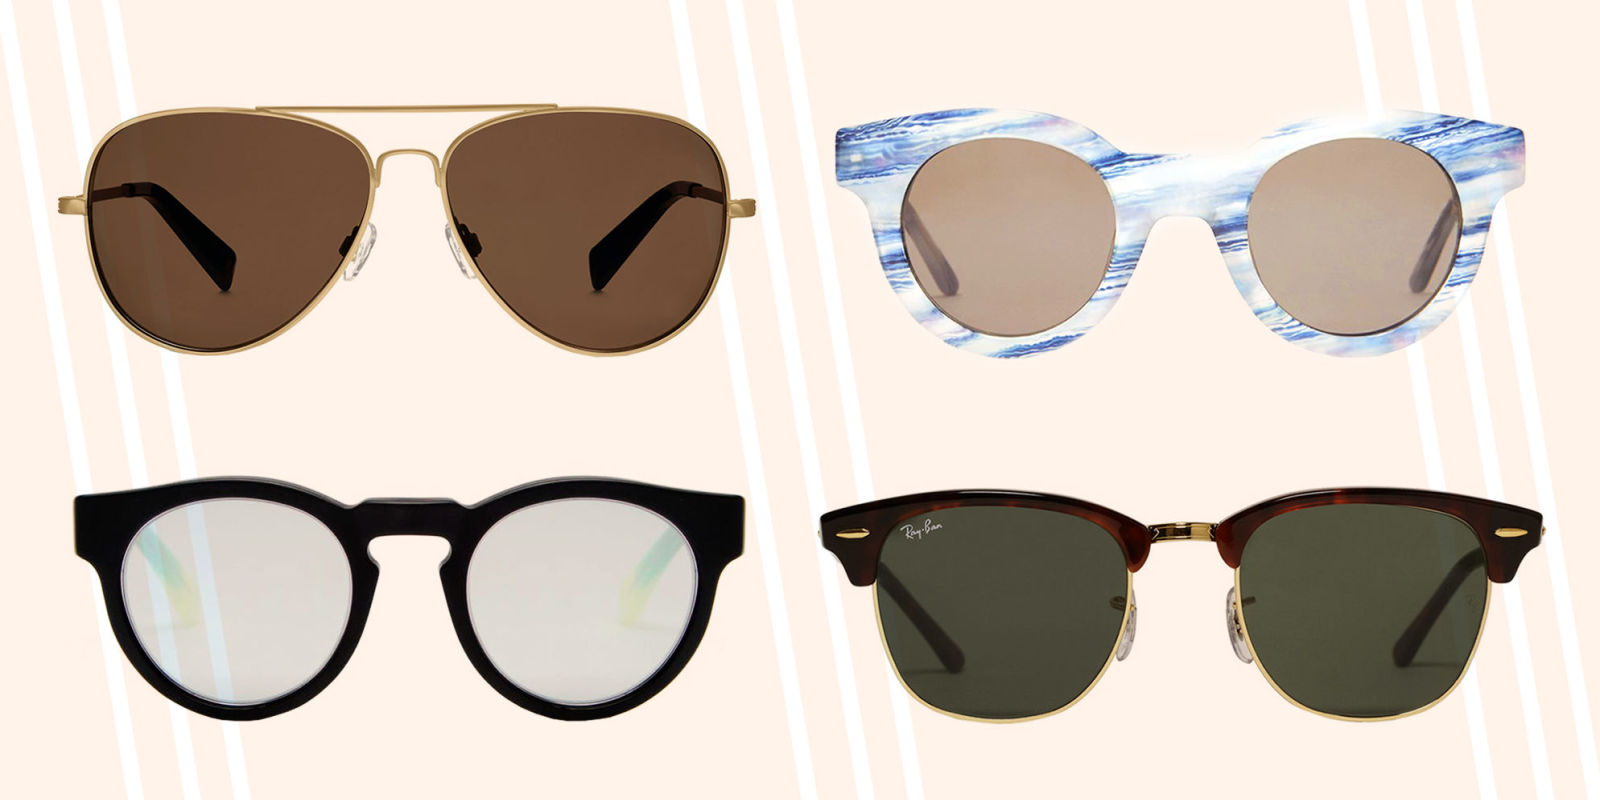 10 Best Sunglasses For Men in 2018 - Stylish and Cheap ...